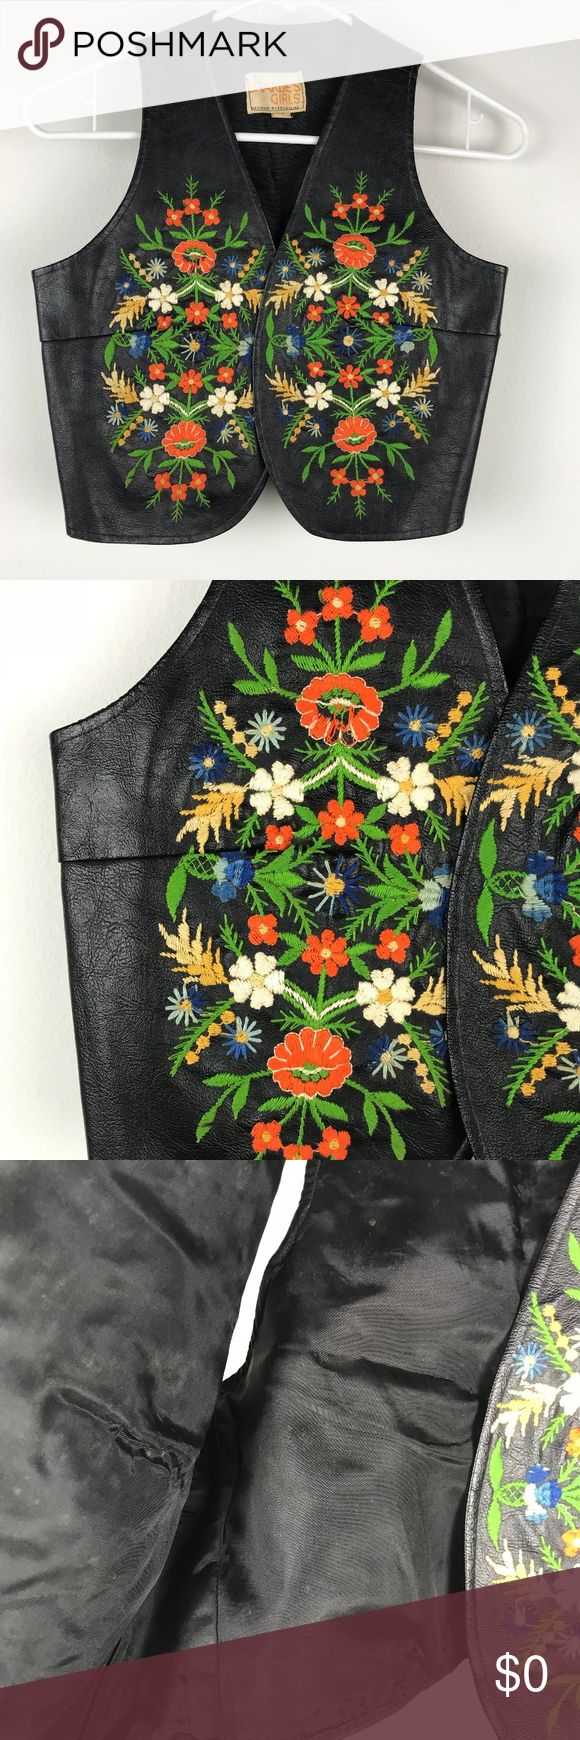 Charlie's Girls Jacket Vest Lined Embroidered Sz 5 Brand: Charlie's Girls Buyer: Girls Item: Jacket Material: Faux Leather Fit: Vest Details: Embroidered, lined, floral Size: 5 Color: Black, Orange Condition: missing item tag  Measurements: Armpit to Armpit: 16 inches Shoulder to Hem: 16 inches  Location: OO17 Weight: FC 7 oz Charlie's Girls Jackets & Coats Vests